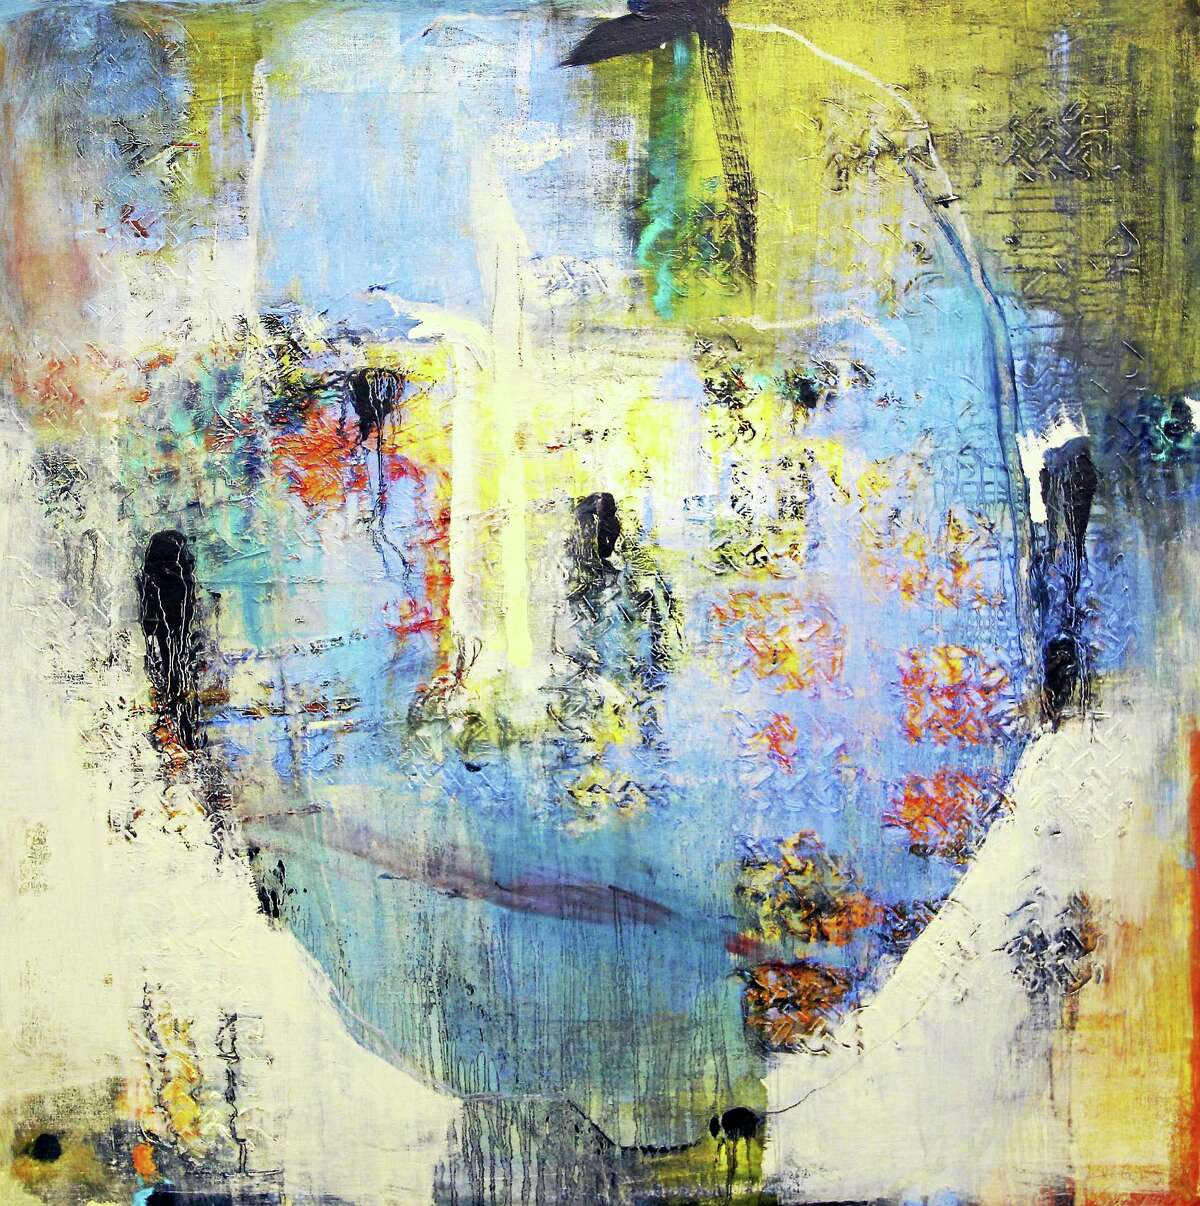 """""""Head,"""" a painting by Patricia Carrigan, is part of her exhibit at Five Points Gallery, """"Headlands."""" The show joins exhibits including """"Watch your step!"""" by Cat Balco and works by Eva Stengade."""